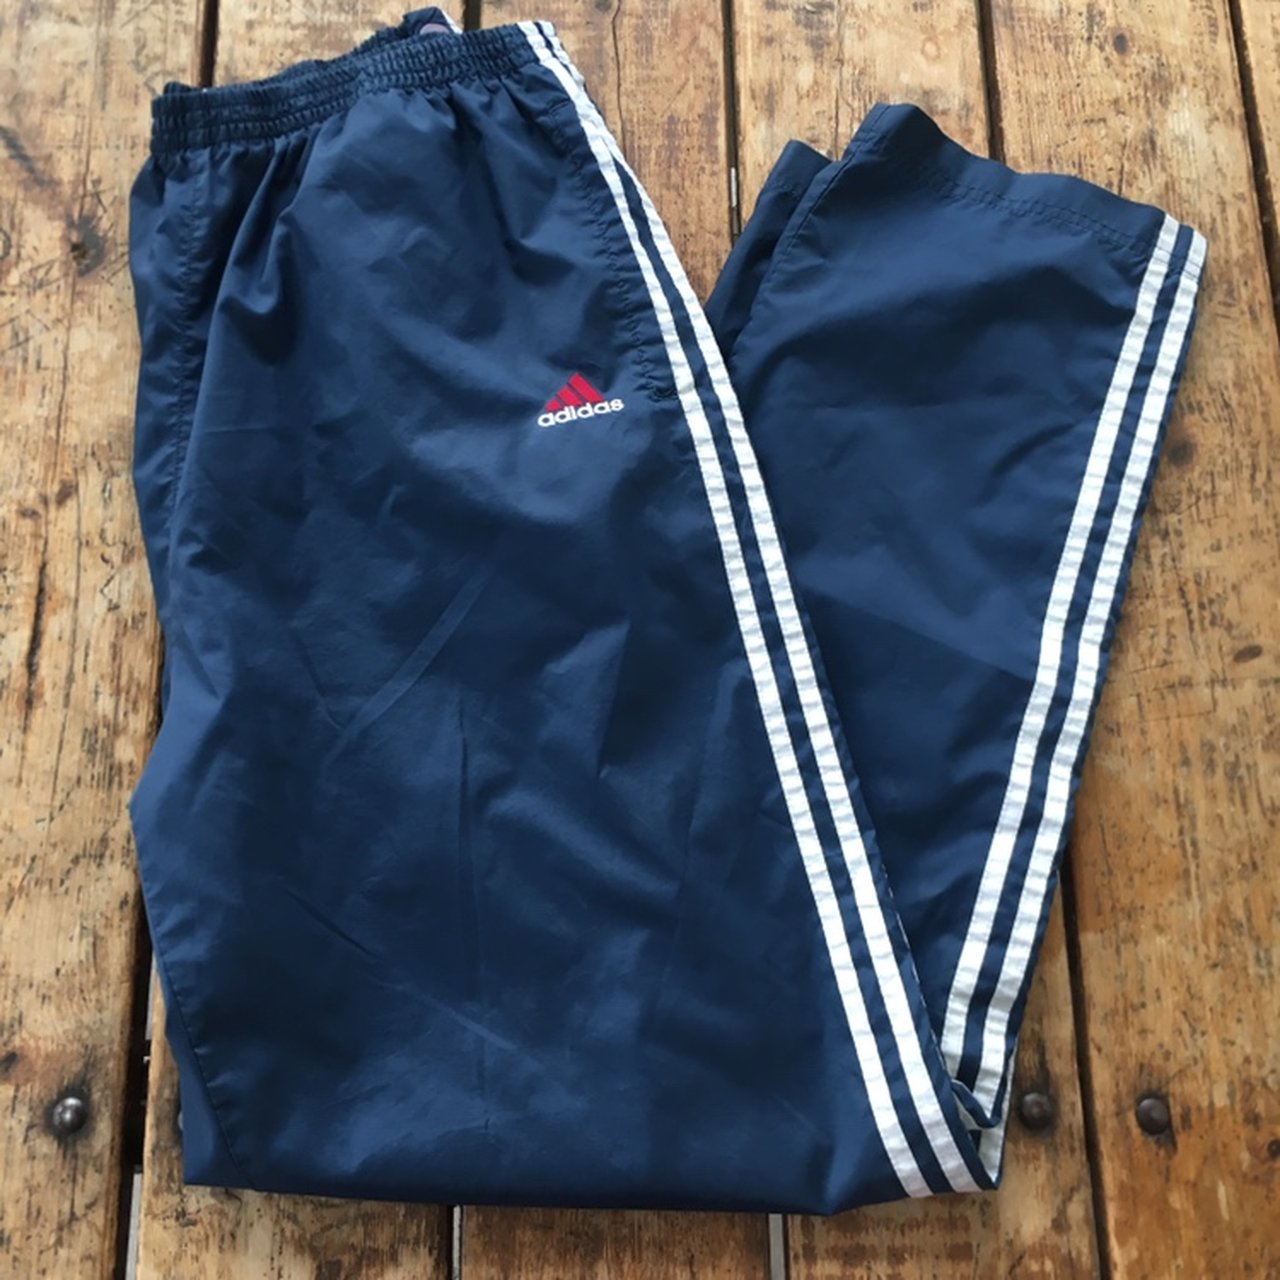 b5bfb8478c30 Vintage Adidas Navy Blue Snap Track Pants  L Condition  Has - Depop